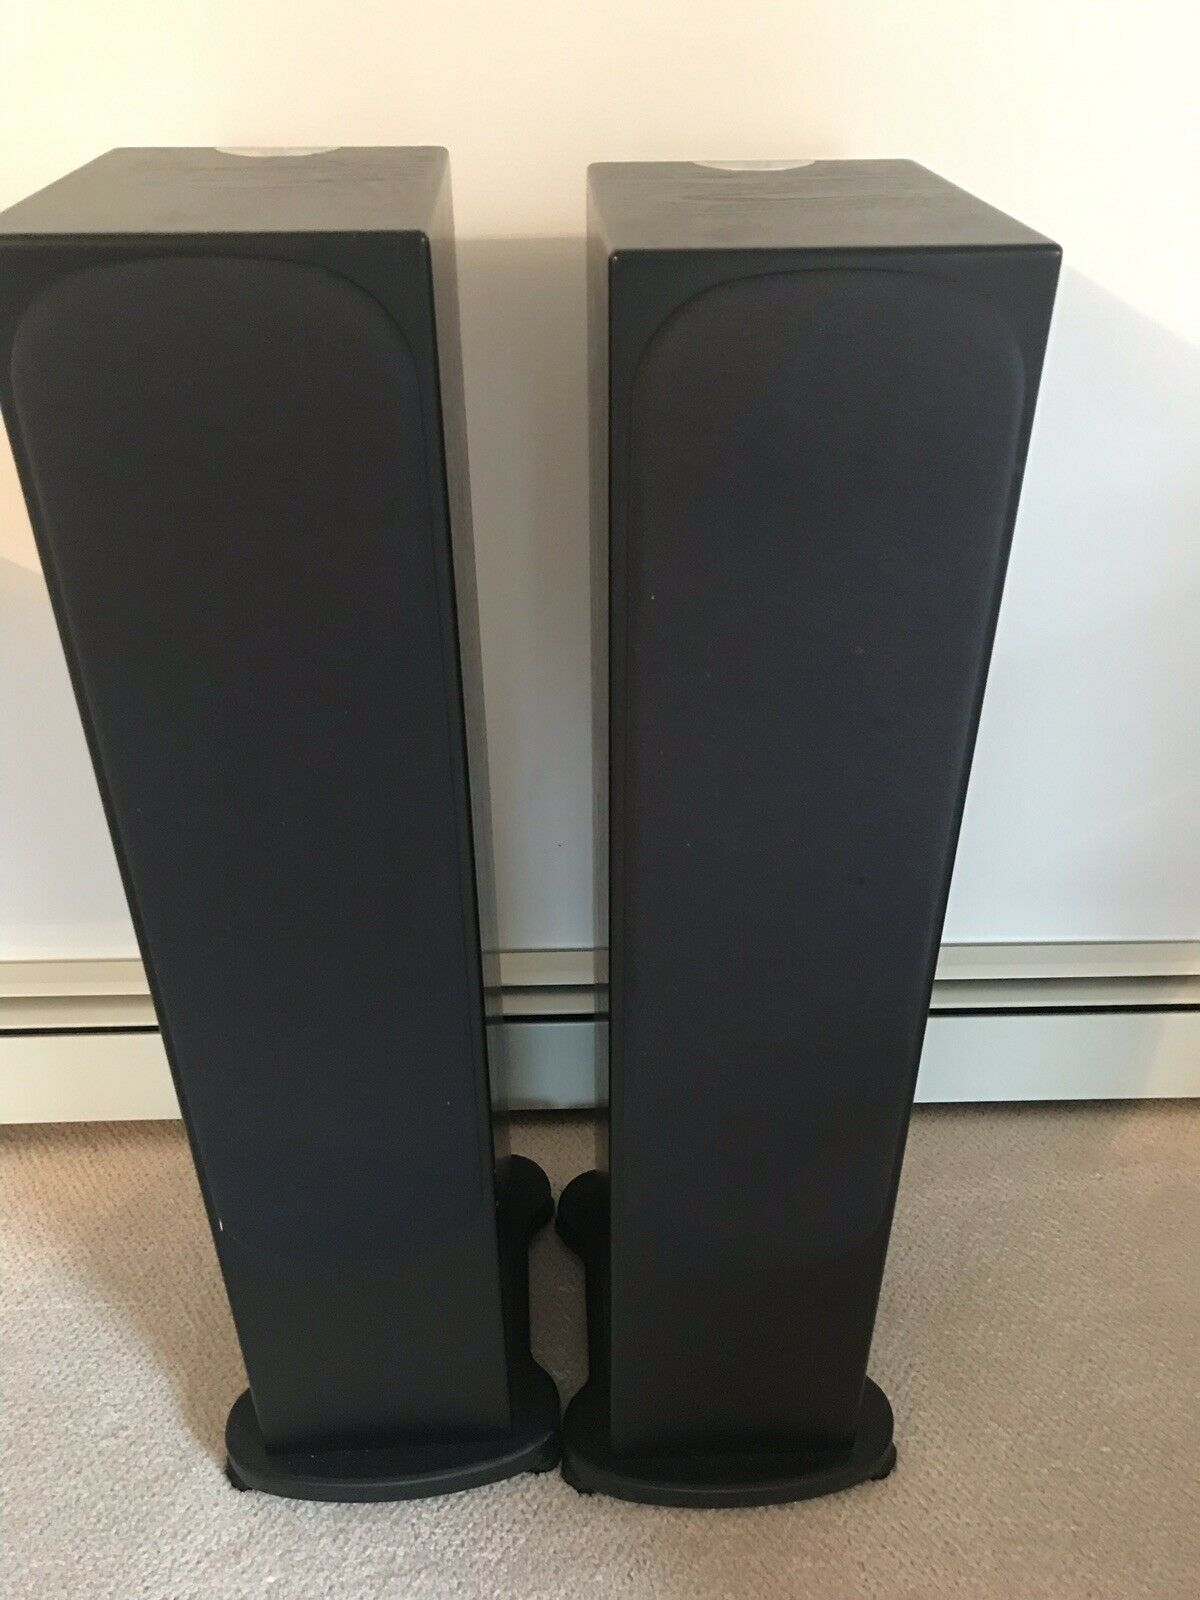 1 Pair Monitor Audio RS-6 Rear Speakers Perfect Condition. Works Perfect